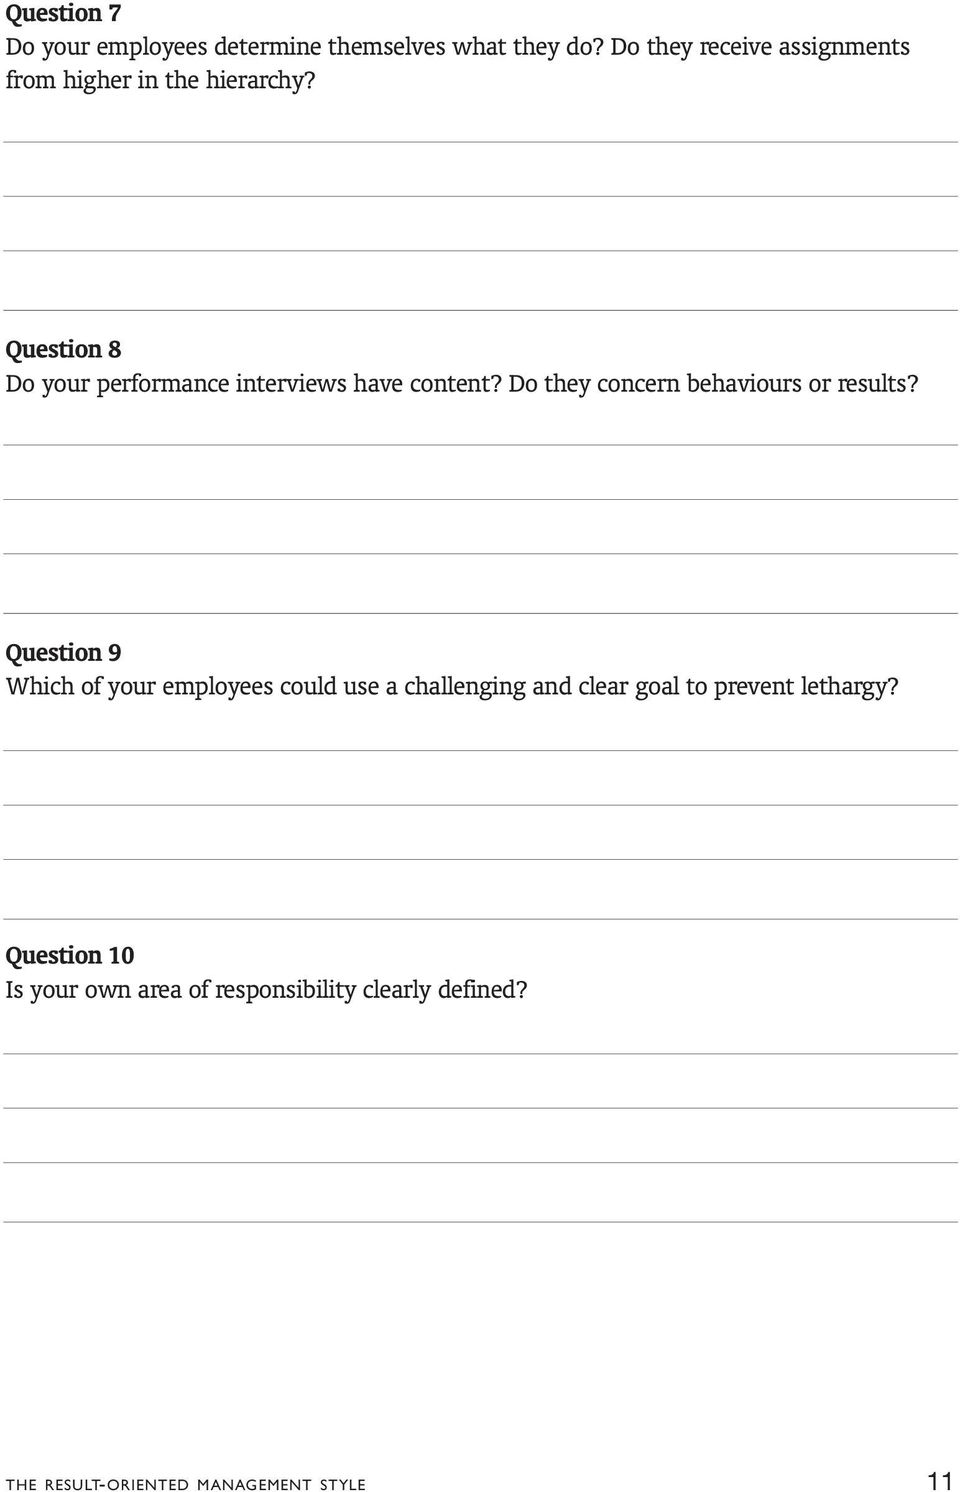 Question 8 Do your performance interviews have content? Do they concern behaviours or results?